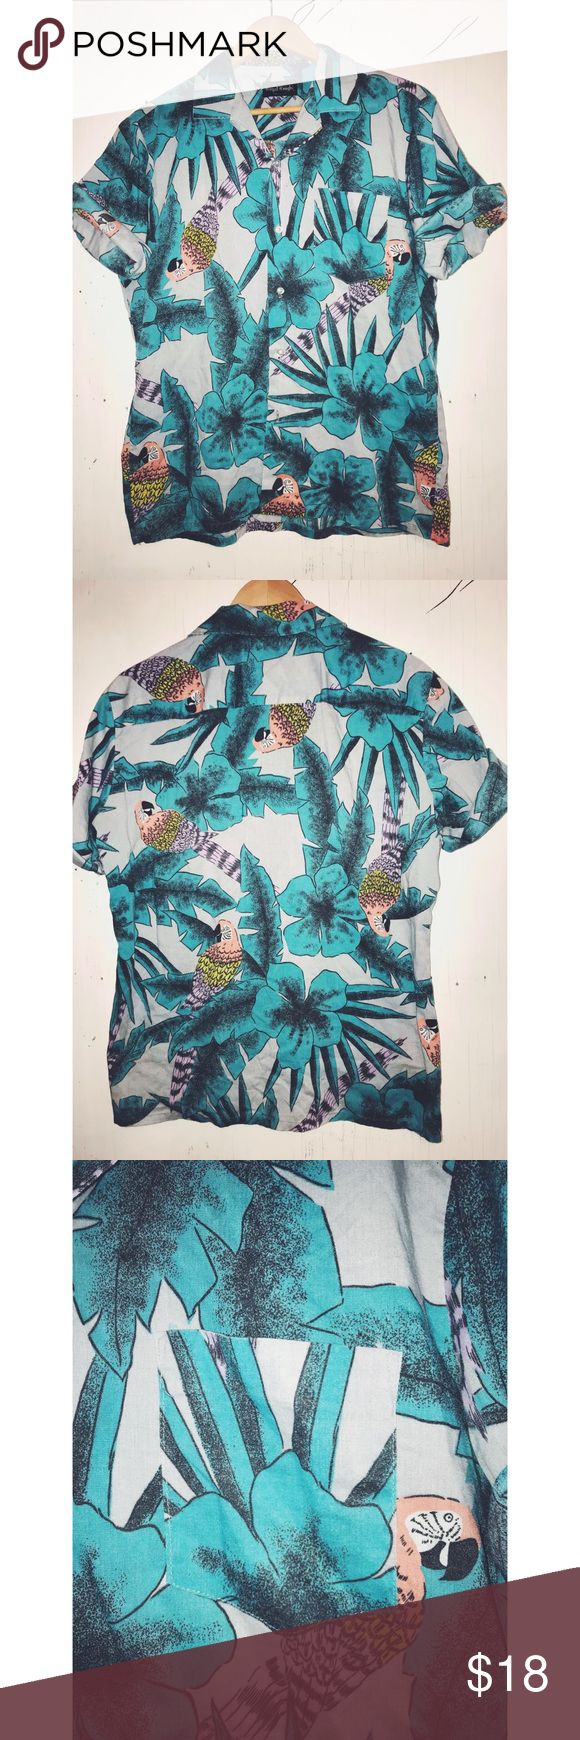 🌊✨WAVY AF' VACA' BUTTON UP✨🌊 Paradise 🌊 vibes linen button up! Light weight could be a nice tied button crop top for females or worn normally for men!  *DETAILS* Brand: Royal knight Size: Medium Style: short sleeves button up Color: blue shades of red green  Condition:great, no stains or snags royal knight Shirts Casual Button Down Shirts